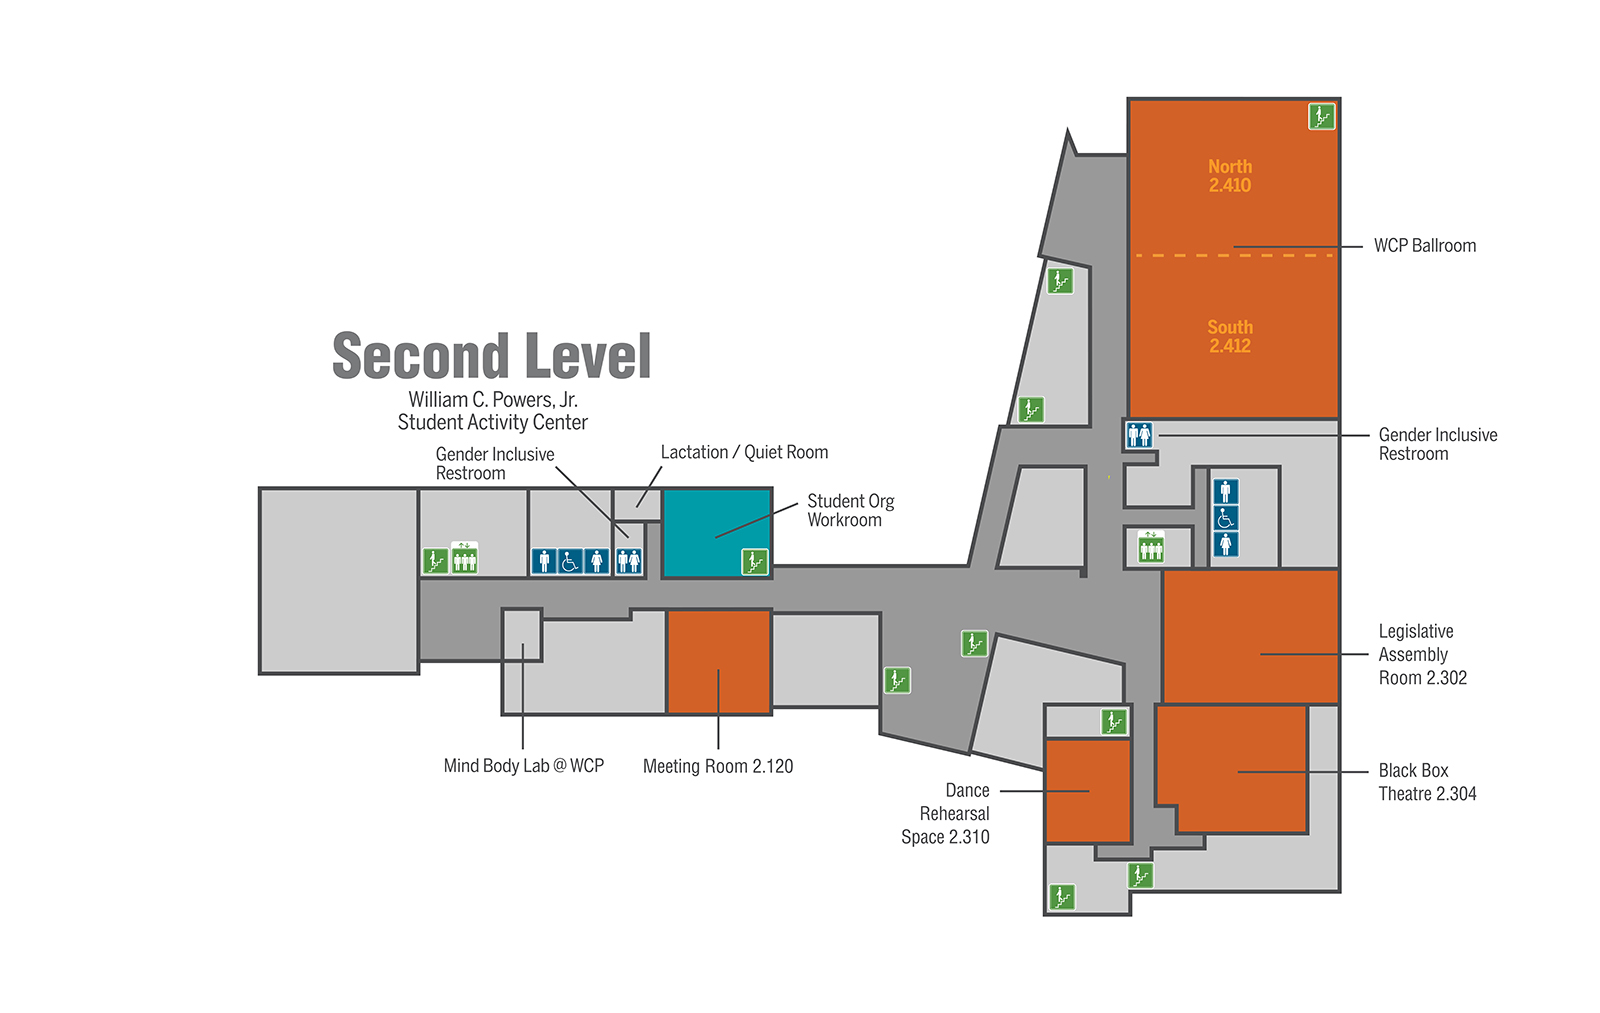 Generic map of William C. Powers, Jr. Student Activity Center second level.